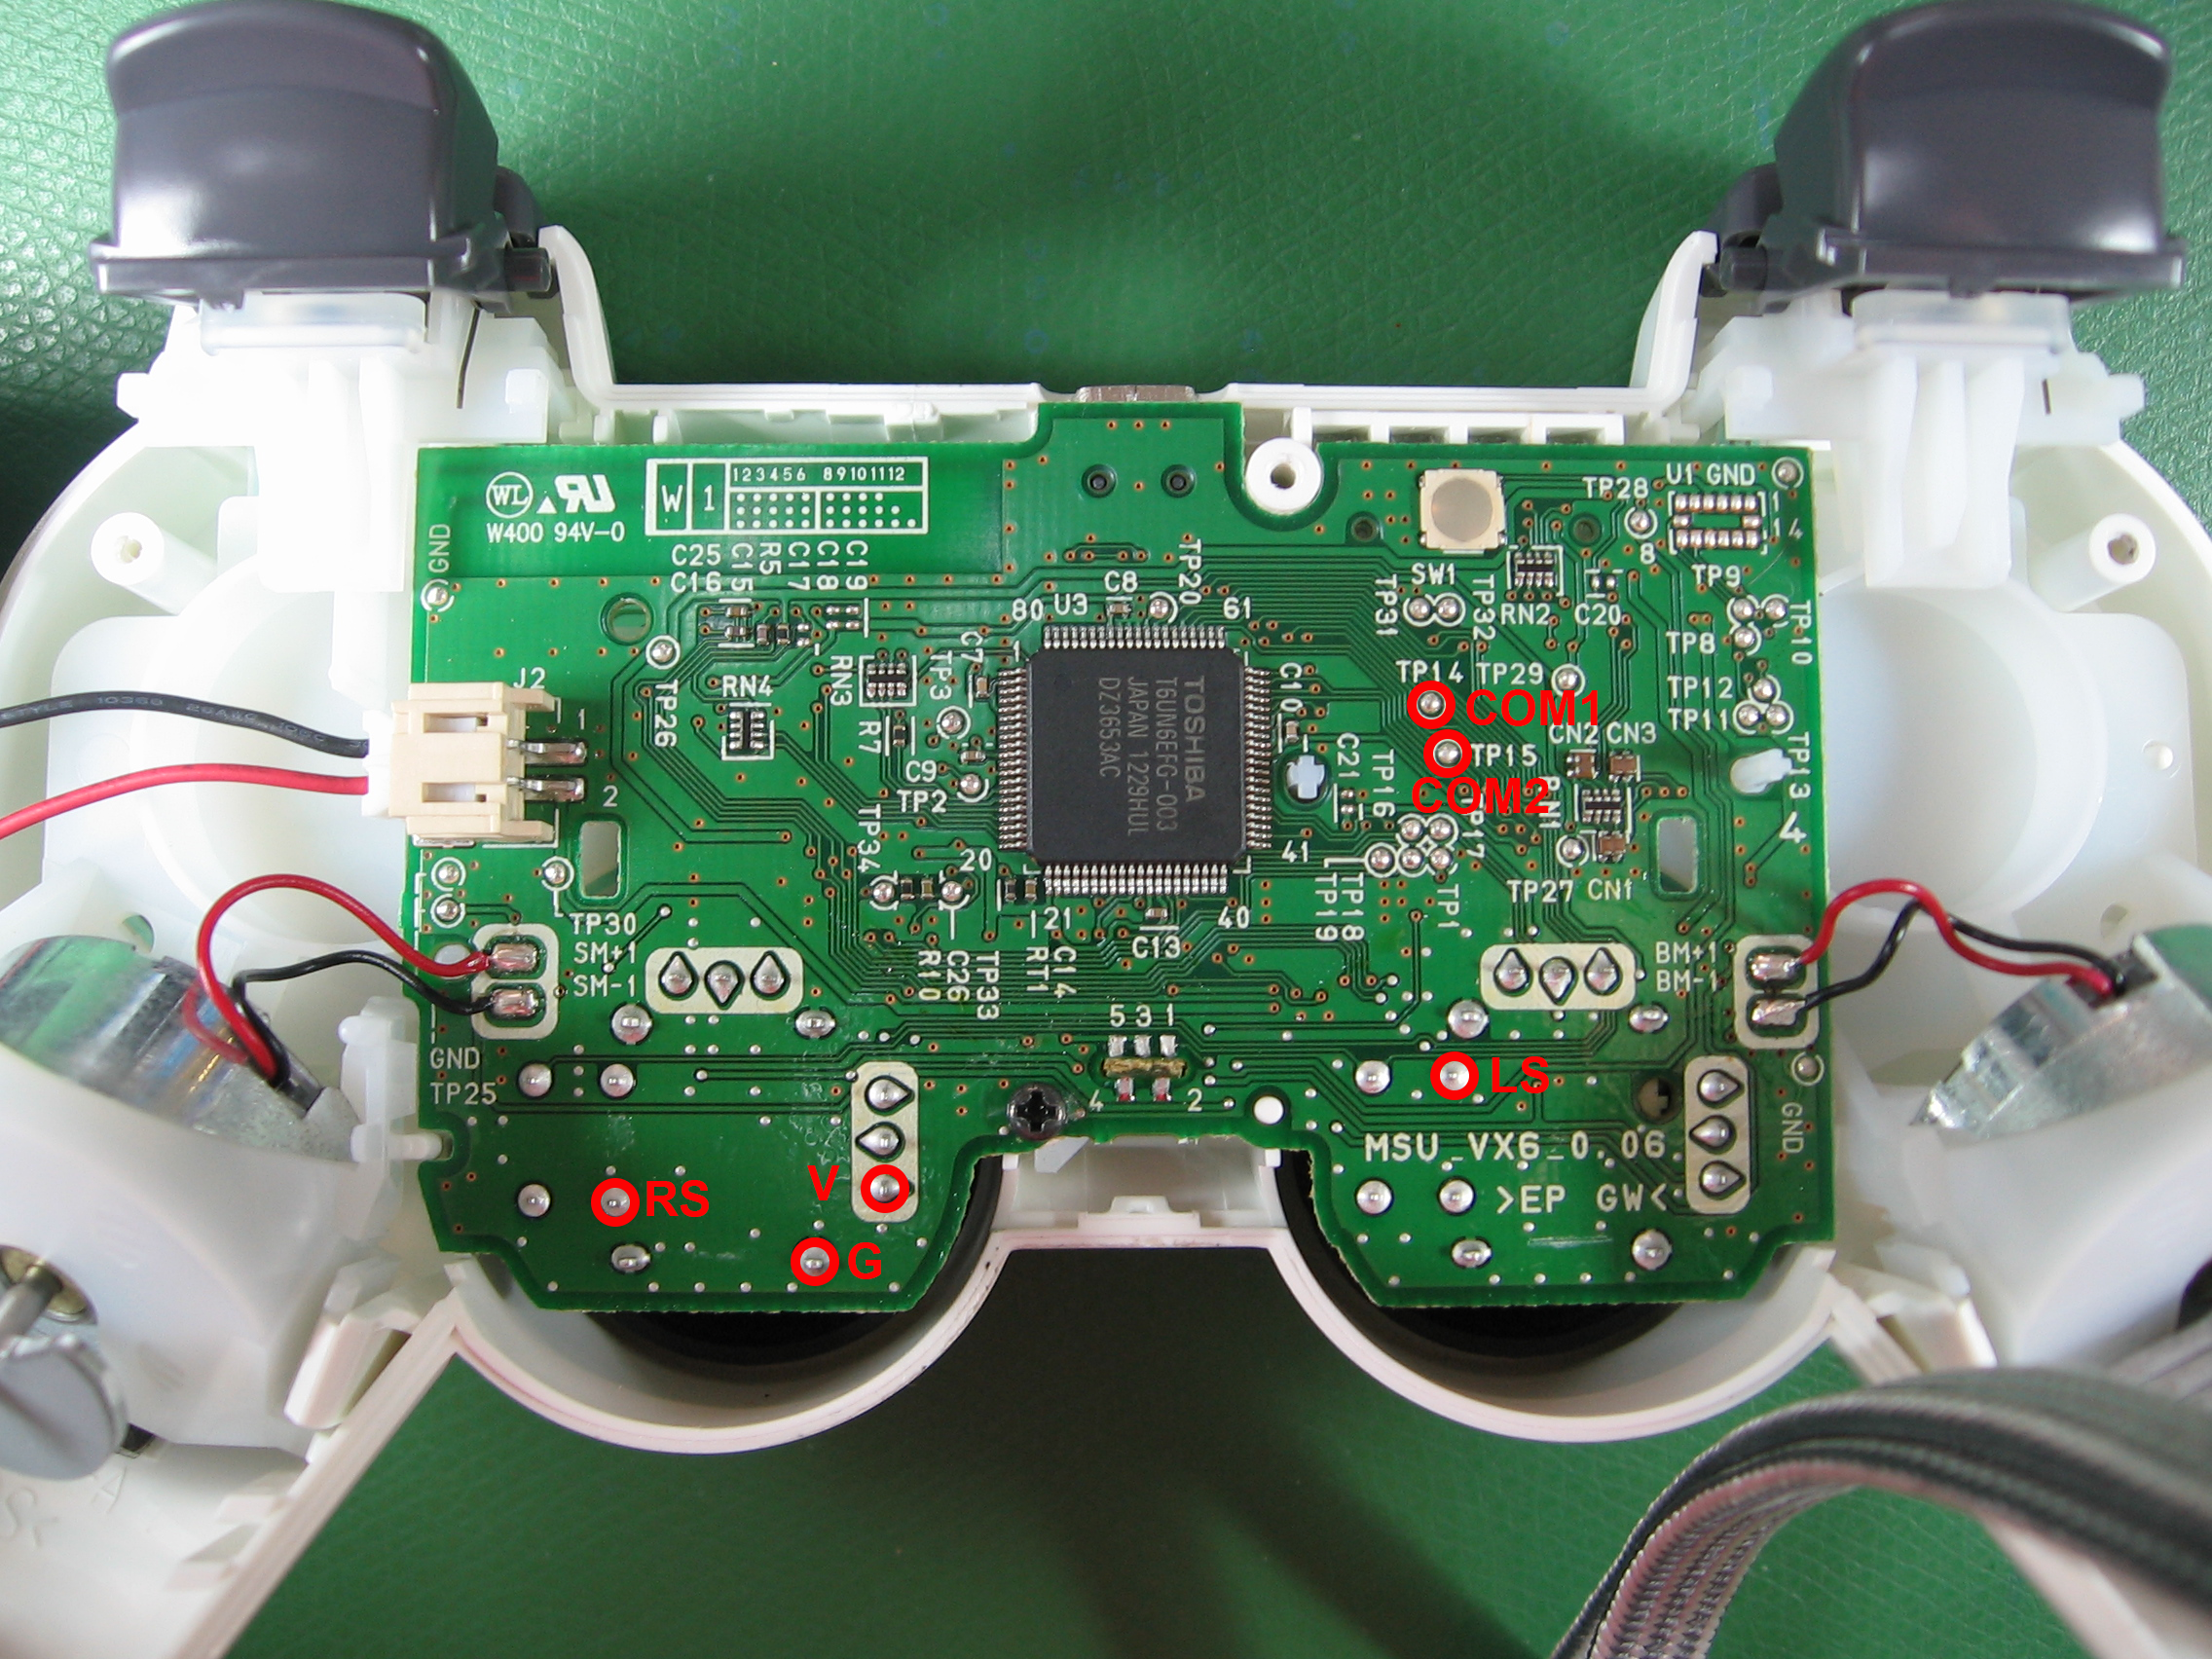 ps controller wiring diagram ps free engine image for user manual